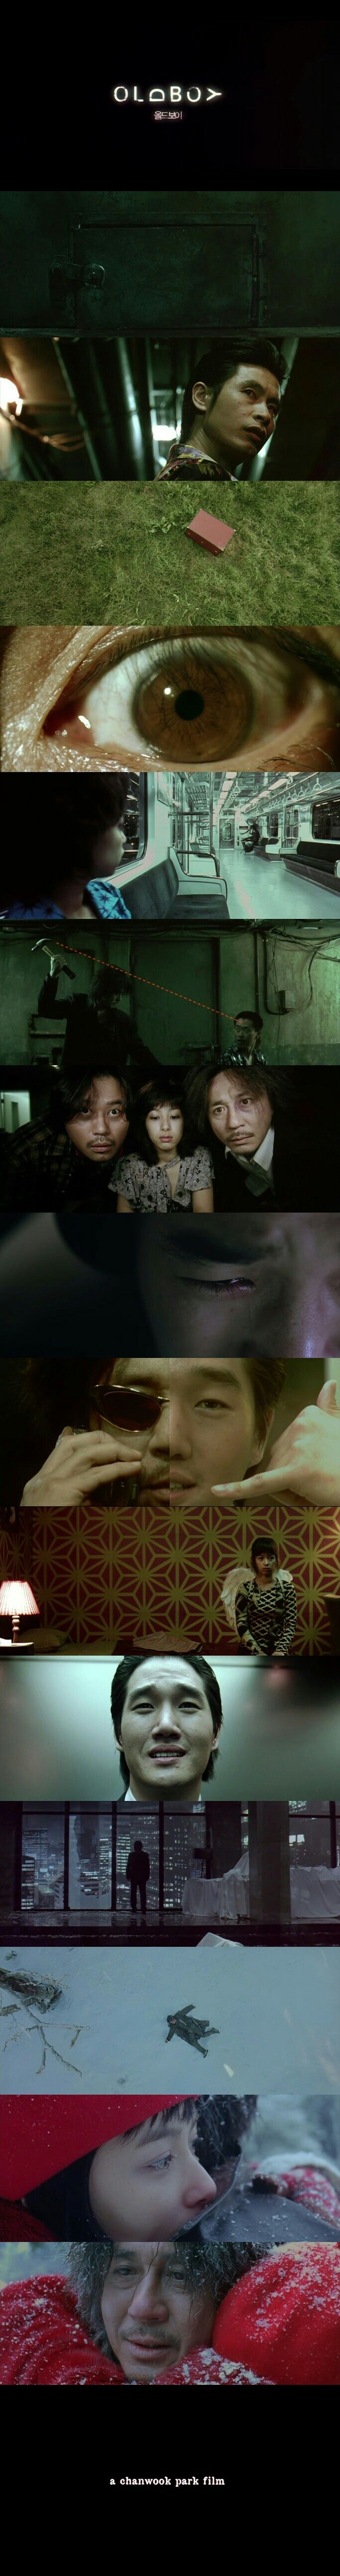 Old Boy (2003) Directed by Park Chan-wook.